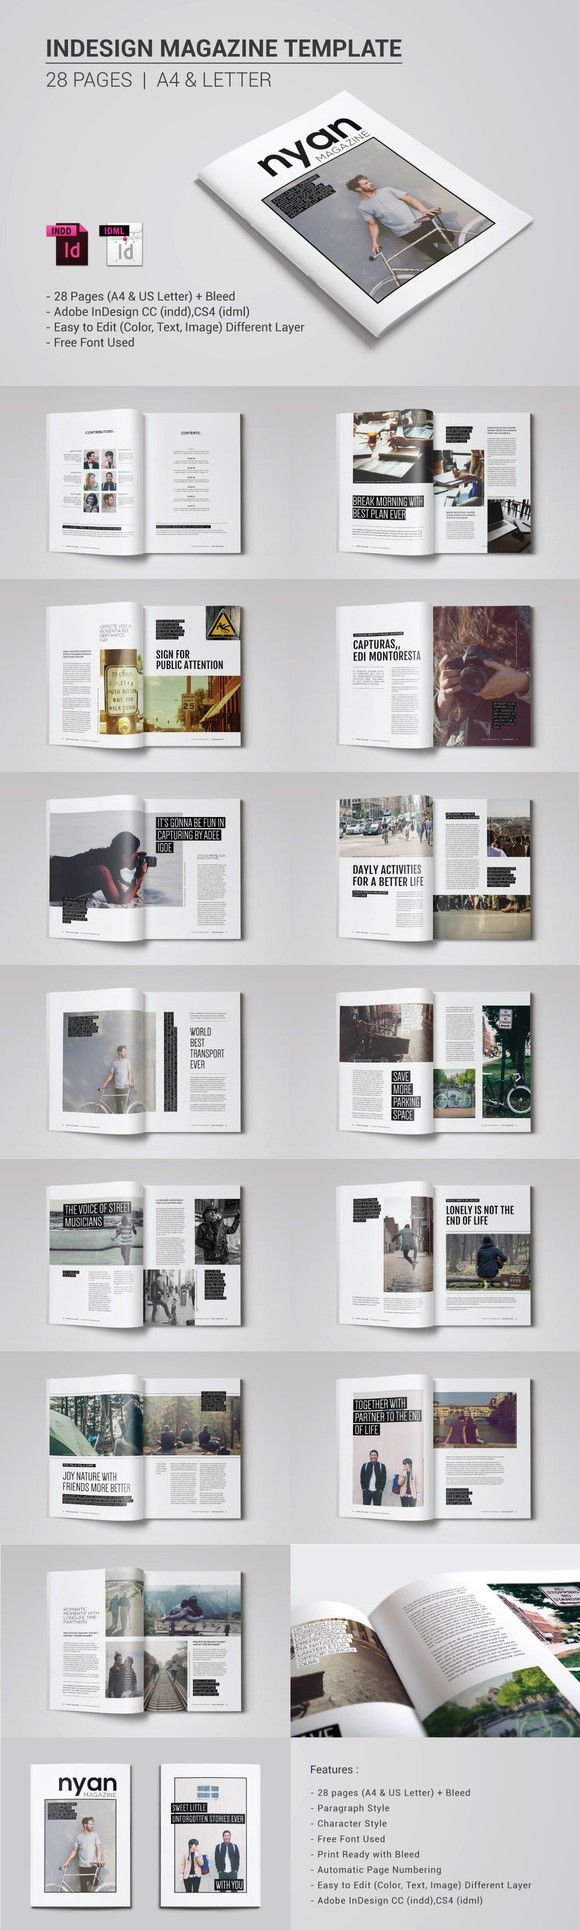 Indesign Magazine Template | Diseño editorial, Editorial y Revistas